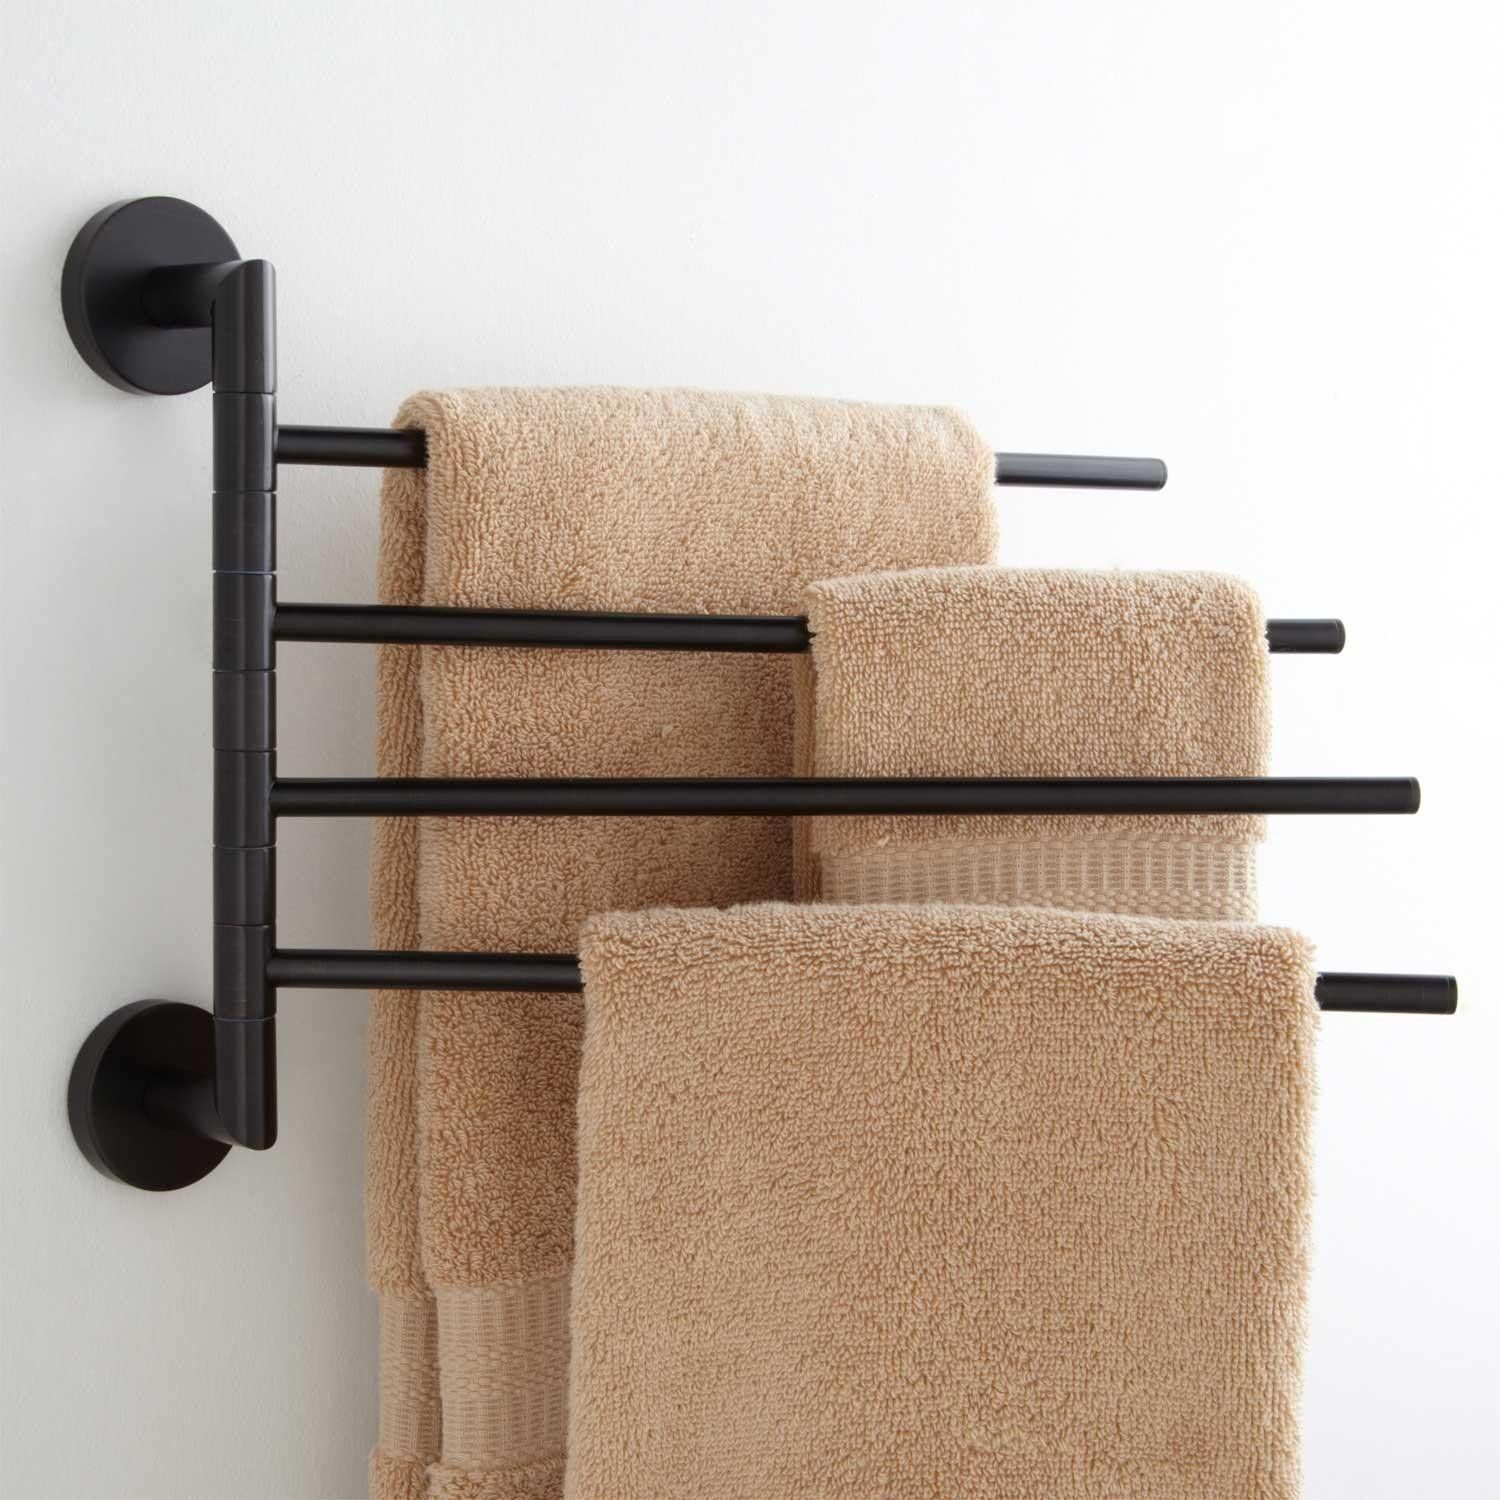 Colvin Quadruple Swing Arm Towel Bar Swings Towels and Arms